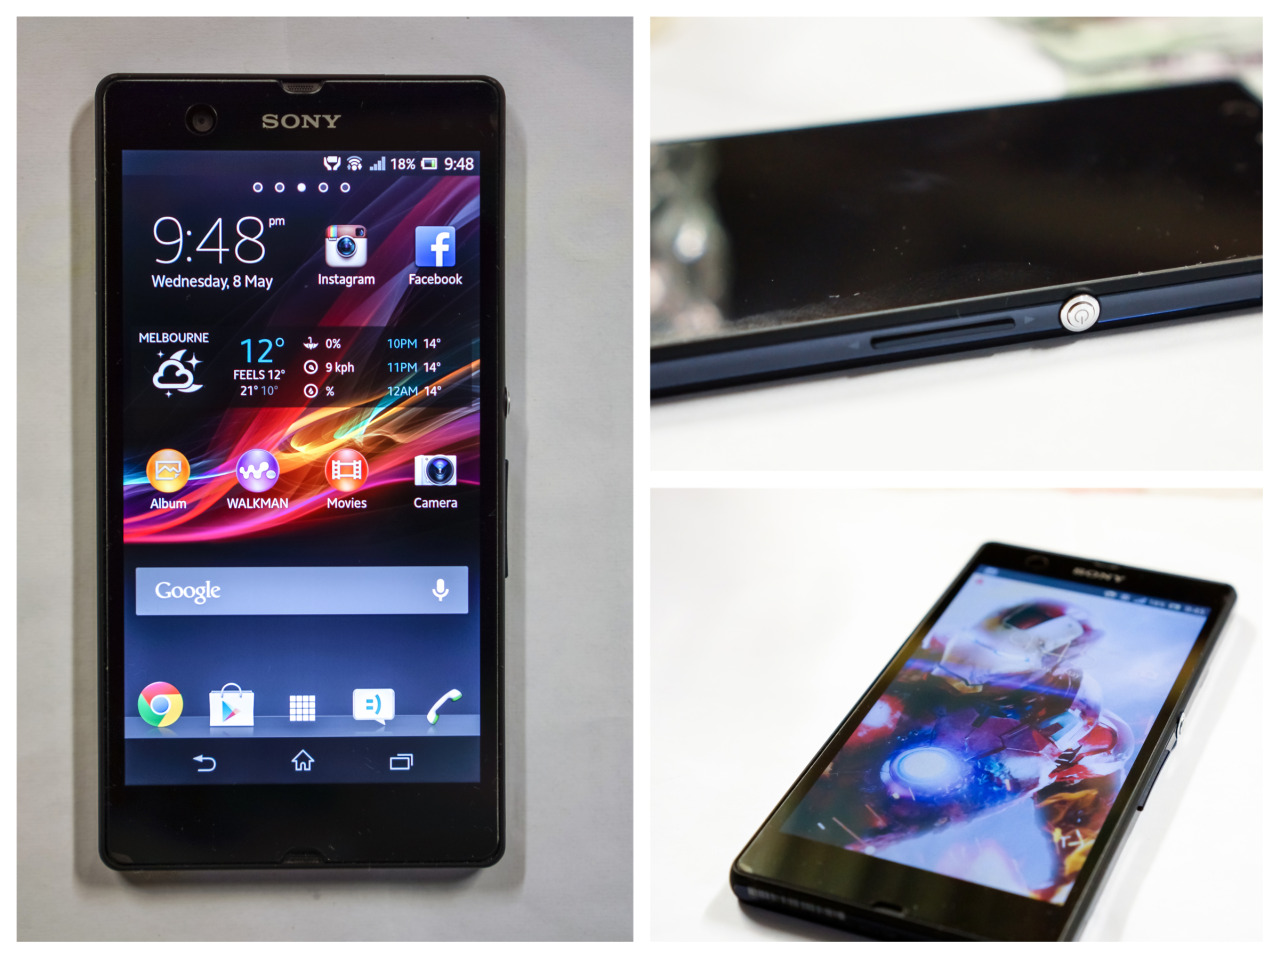 Proudly owned Xperia Z.